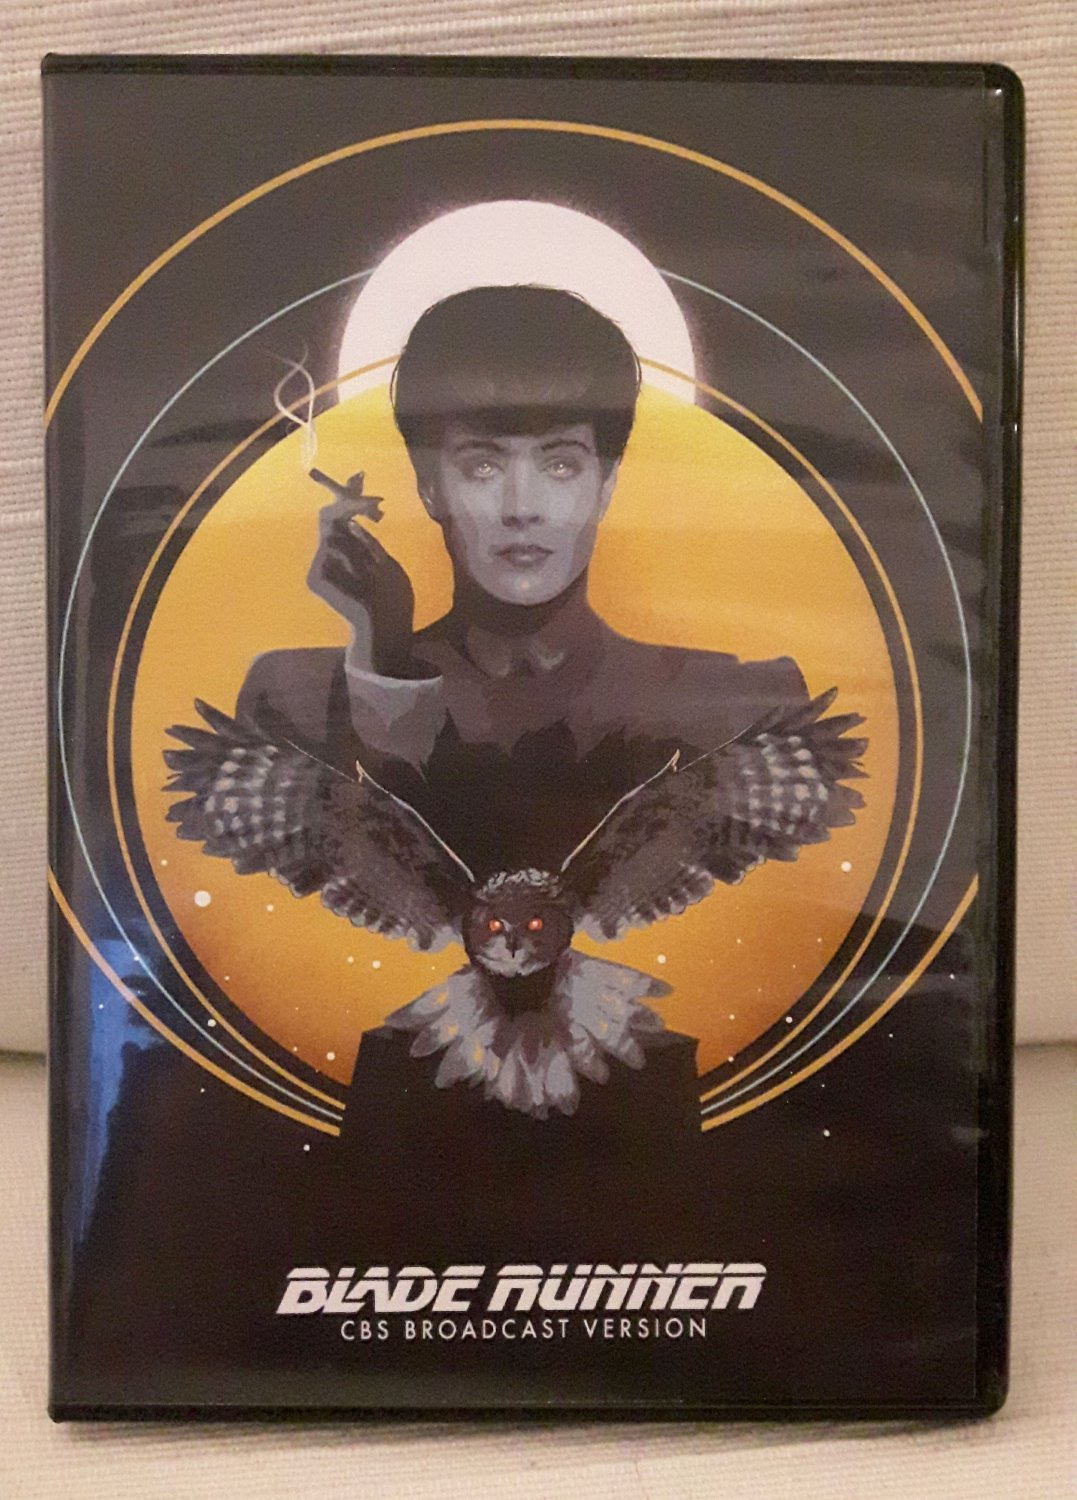 CBS broadcast version Blade Runner DVD video RARE unreleased collectible TV cut Harrison Ford